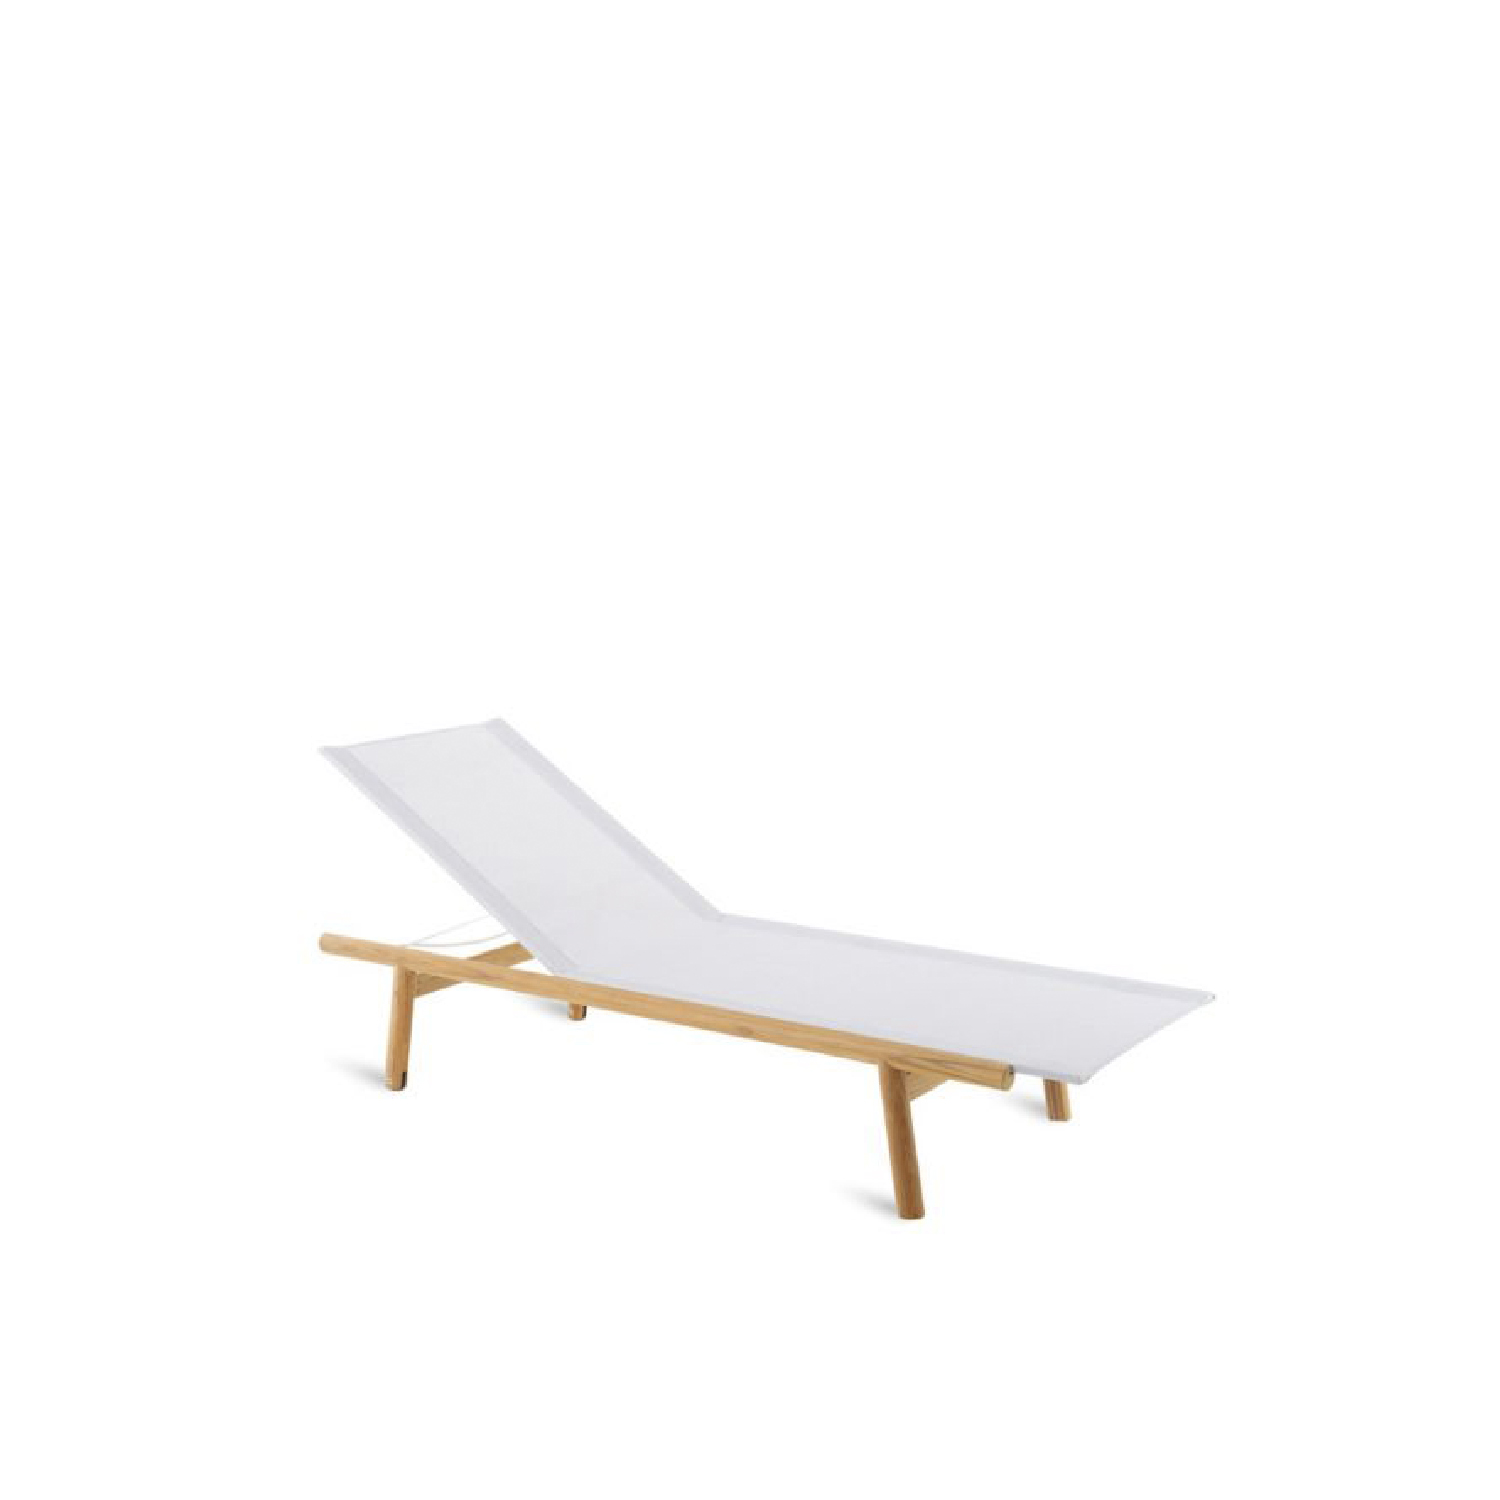 Pevero Sun Lounger - The new really complete Pevero line exalts all the potential of teak, thanks to its clean essential design that highlights the round section of the wood.  Sofas, armchairs, tables both low and tall of various sizes, three different models of the chair and small armchair that are all well suited to other collections, as well as a sun lounger and a large round island, all characterized by teak worked in soft, rounded, graceful lines that are easy on the eye and guarantee maximum comfort, while tastefully furnishing any outdoor area.  Sunlounger (W 204 D 66 H 85 seat H 35) Structure in teak with cover in techno fabric in white | Matter of Stuff